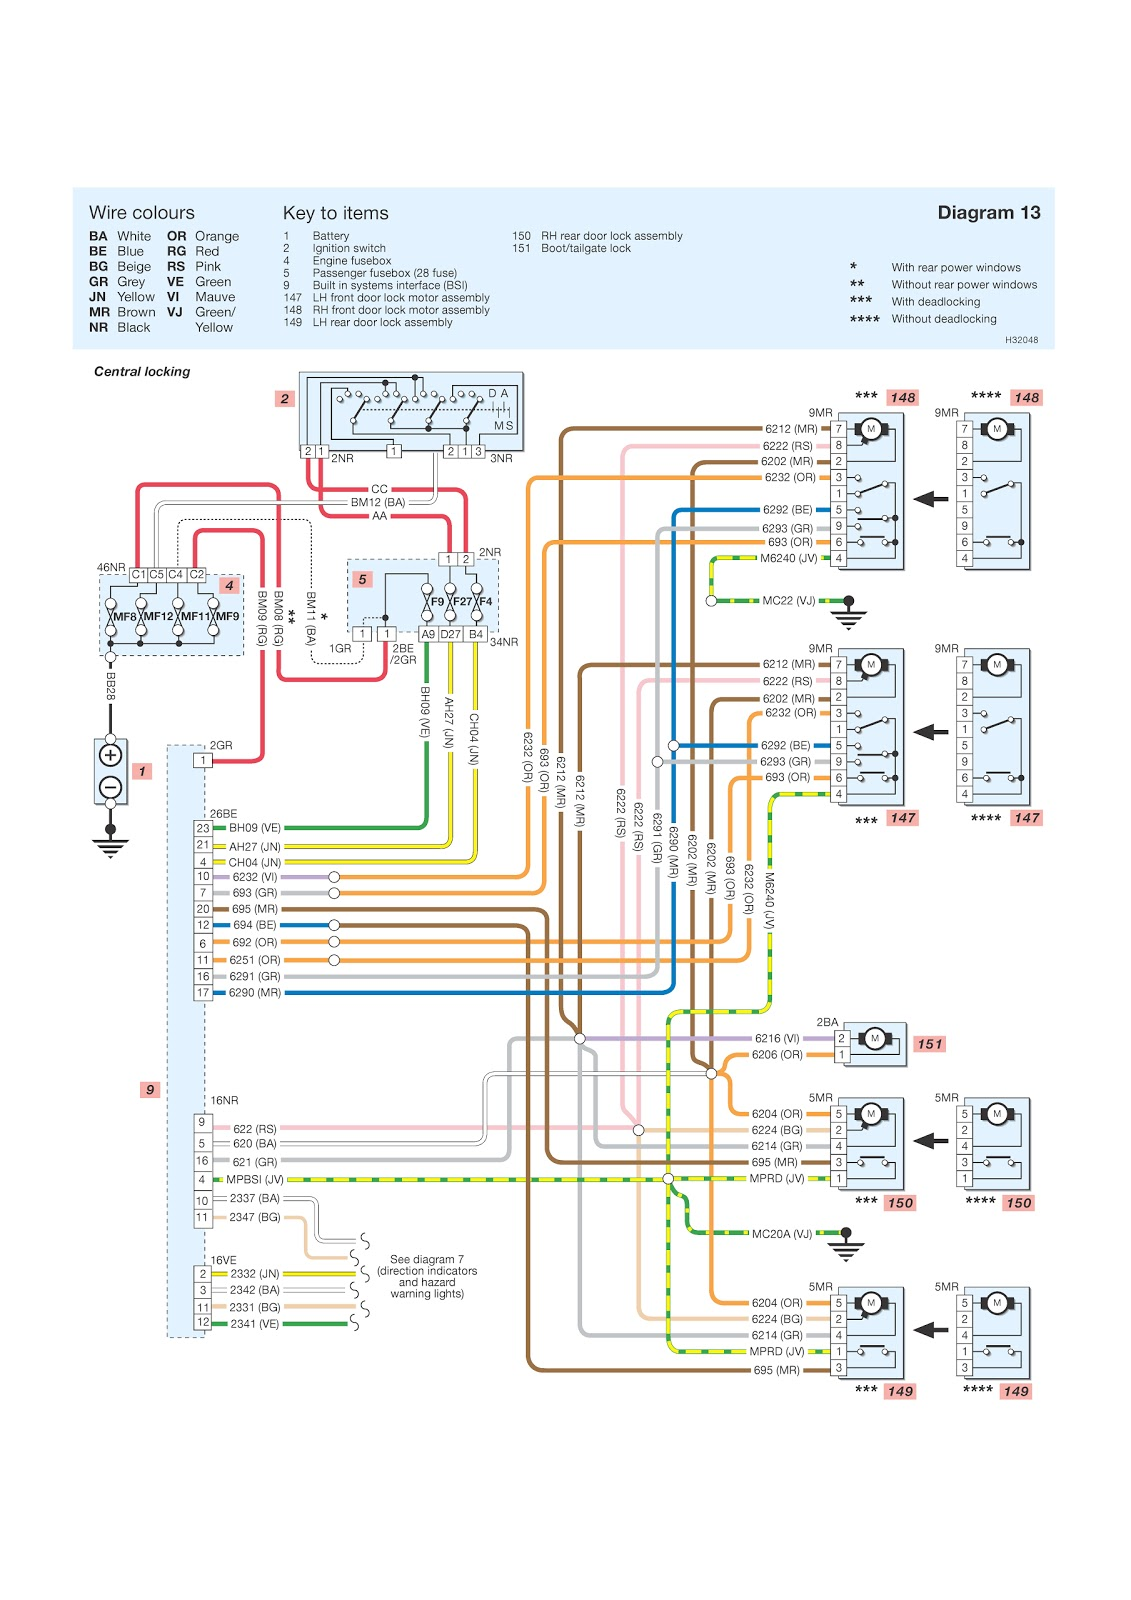 peugeot partner towbar wiring diagram wiring diagram detailed headlight adjustment diagram peugeot expert towbar wiring diagram [ 1131 x 1600 Pixel ]